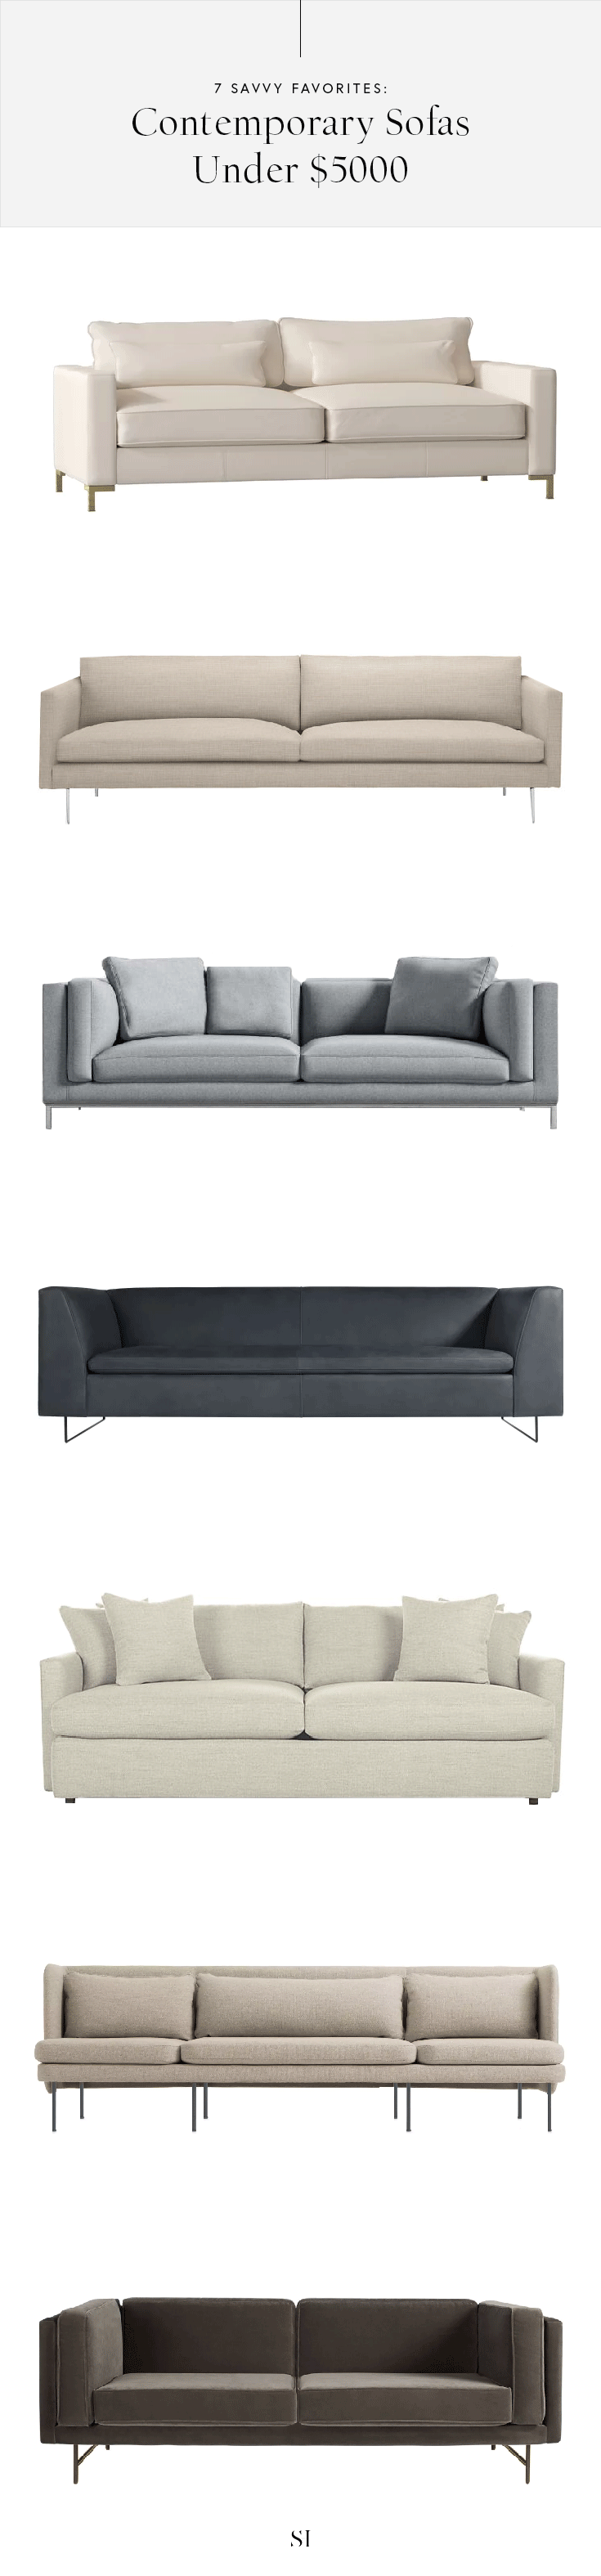 Best-modern-and-contemporary-sofas-and-couches-under-$5000-by-the-savvy-heart-interior-and-home-decor-studio-and-blog.png